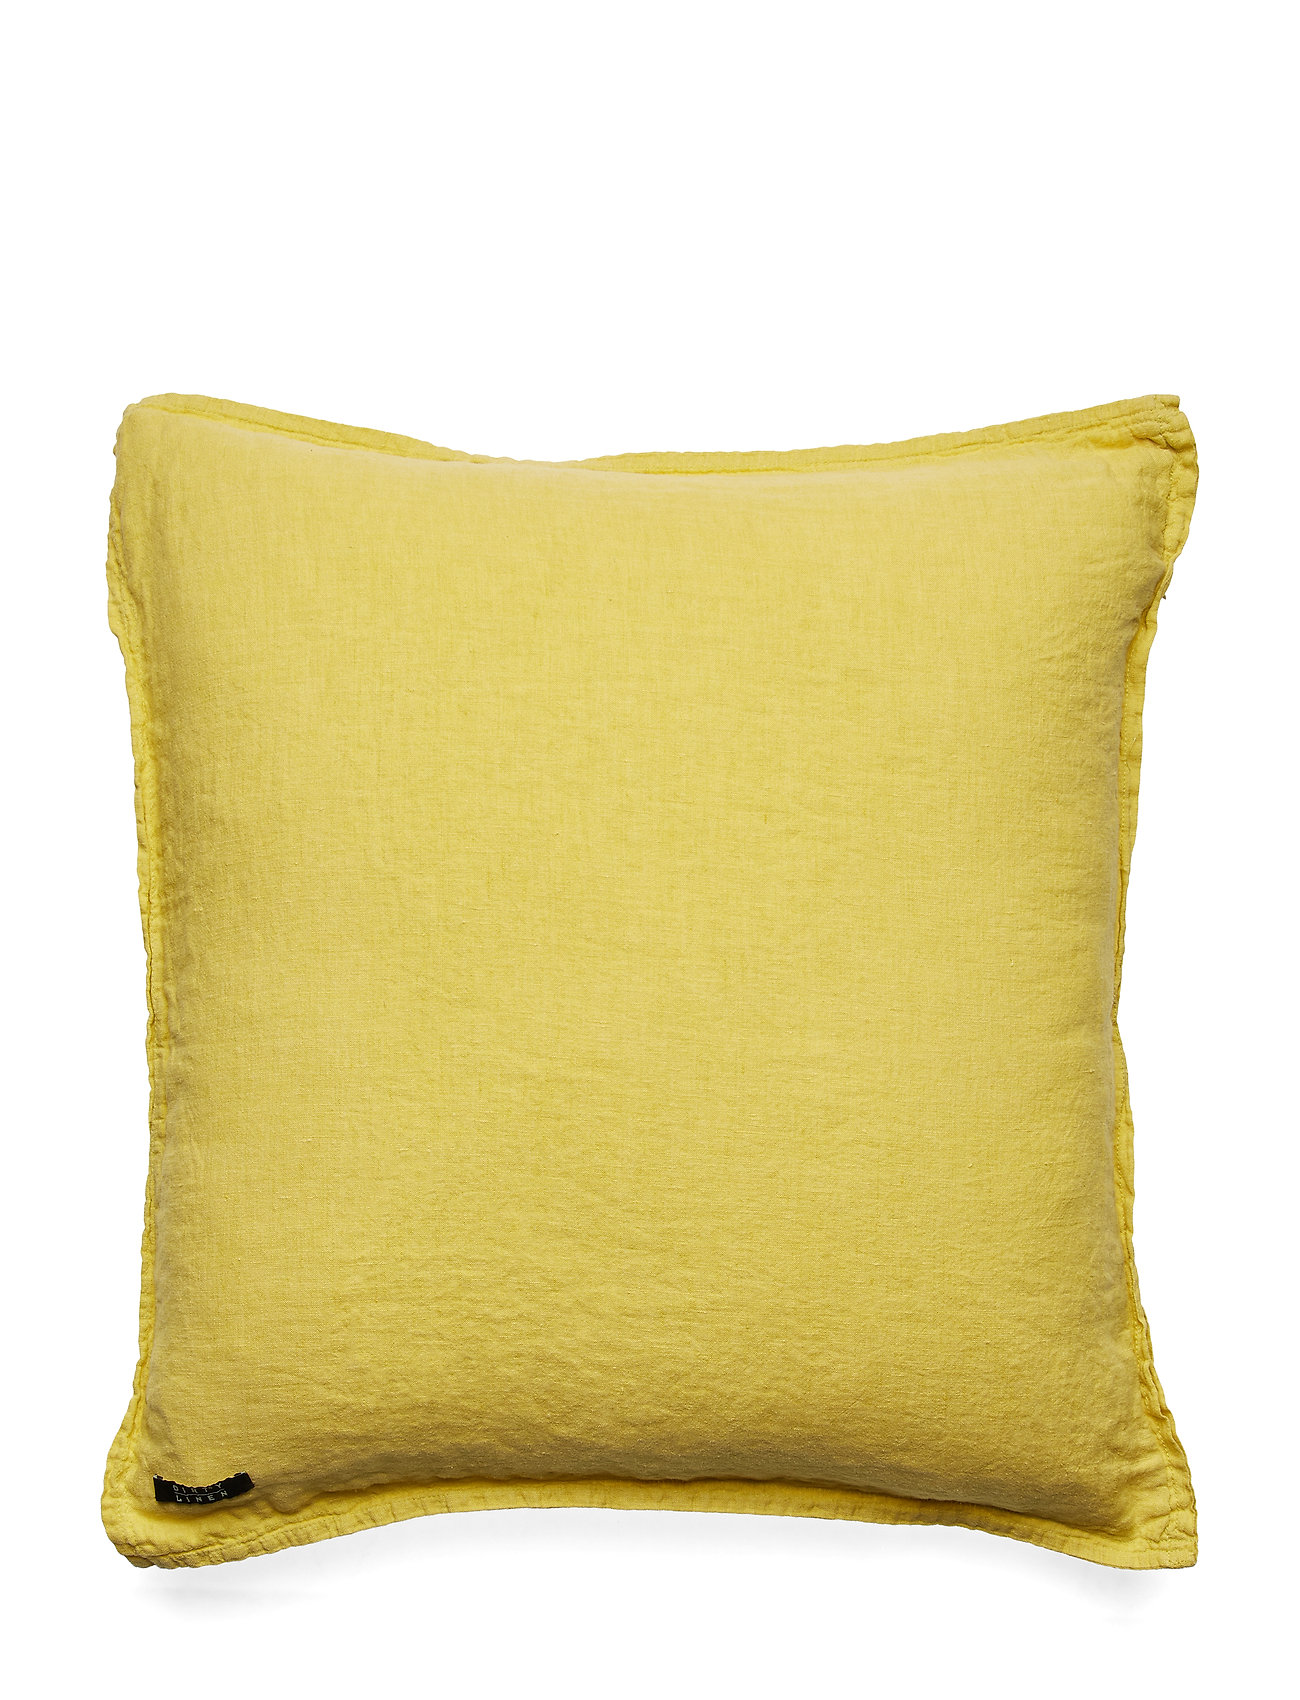 Dirty Linen Pure Decorative Cushion - SUNNY SIDE